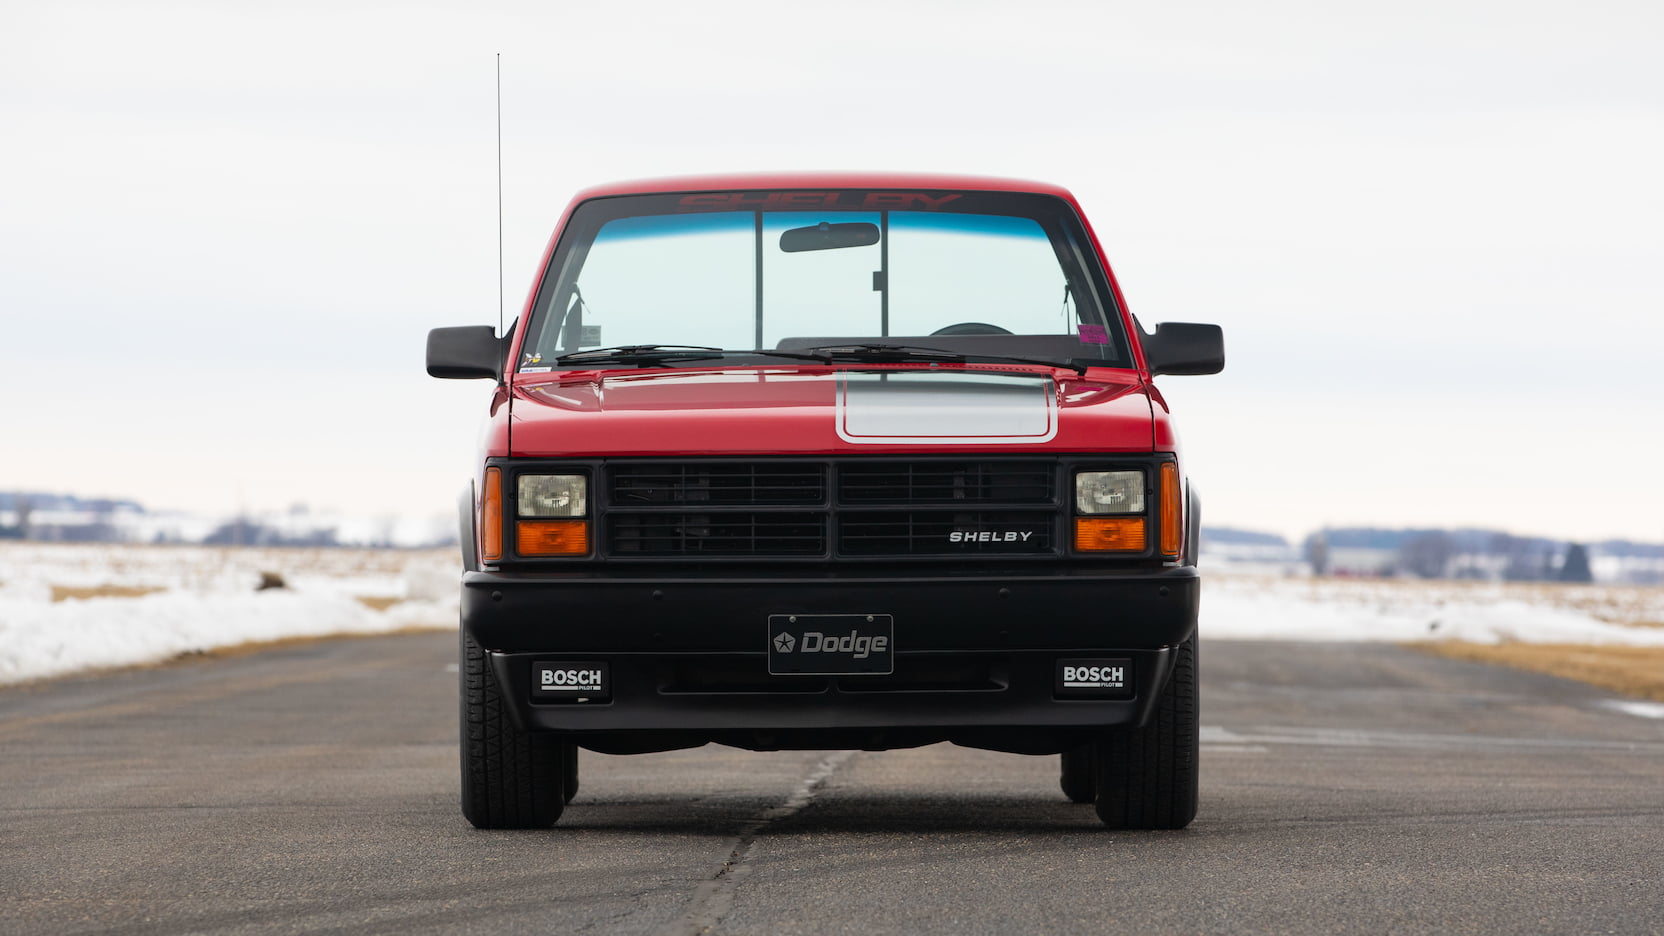 Dodge-Shelby-Dakota-1989-12